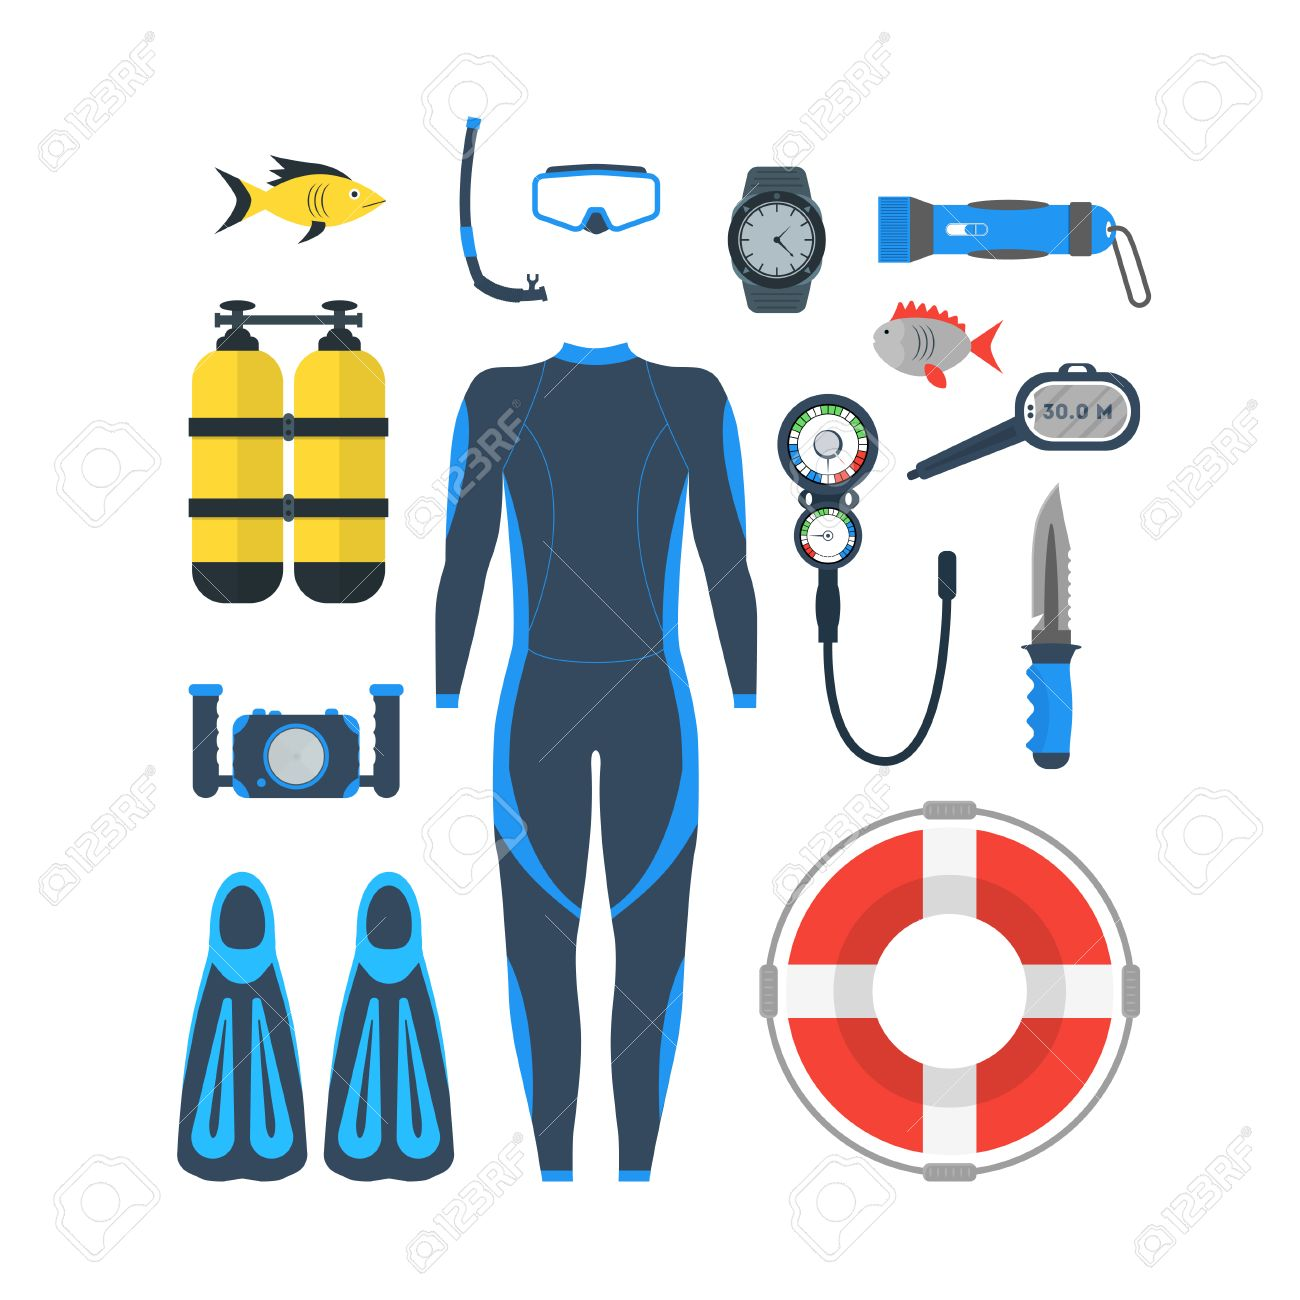 Diving Equipment Set. Mask and Snorkel or Scuba, Flippers and Suit for Swimming. Flat Design Style. Vector illustration - 64155389